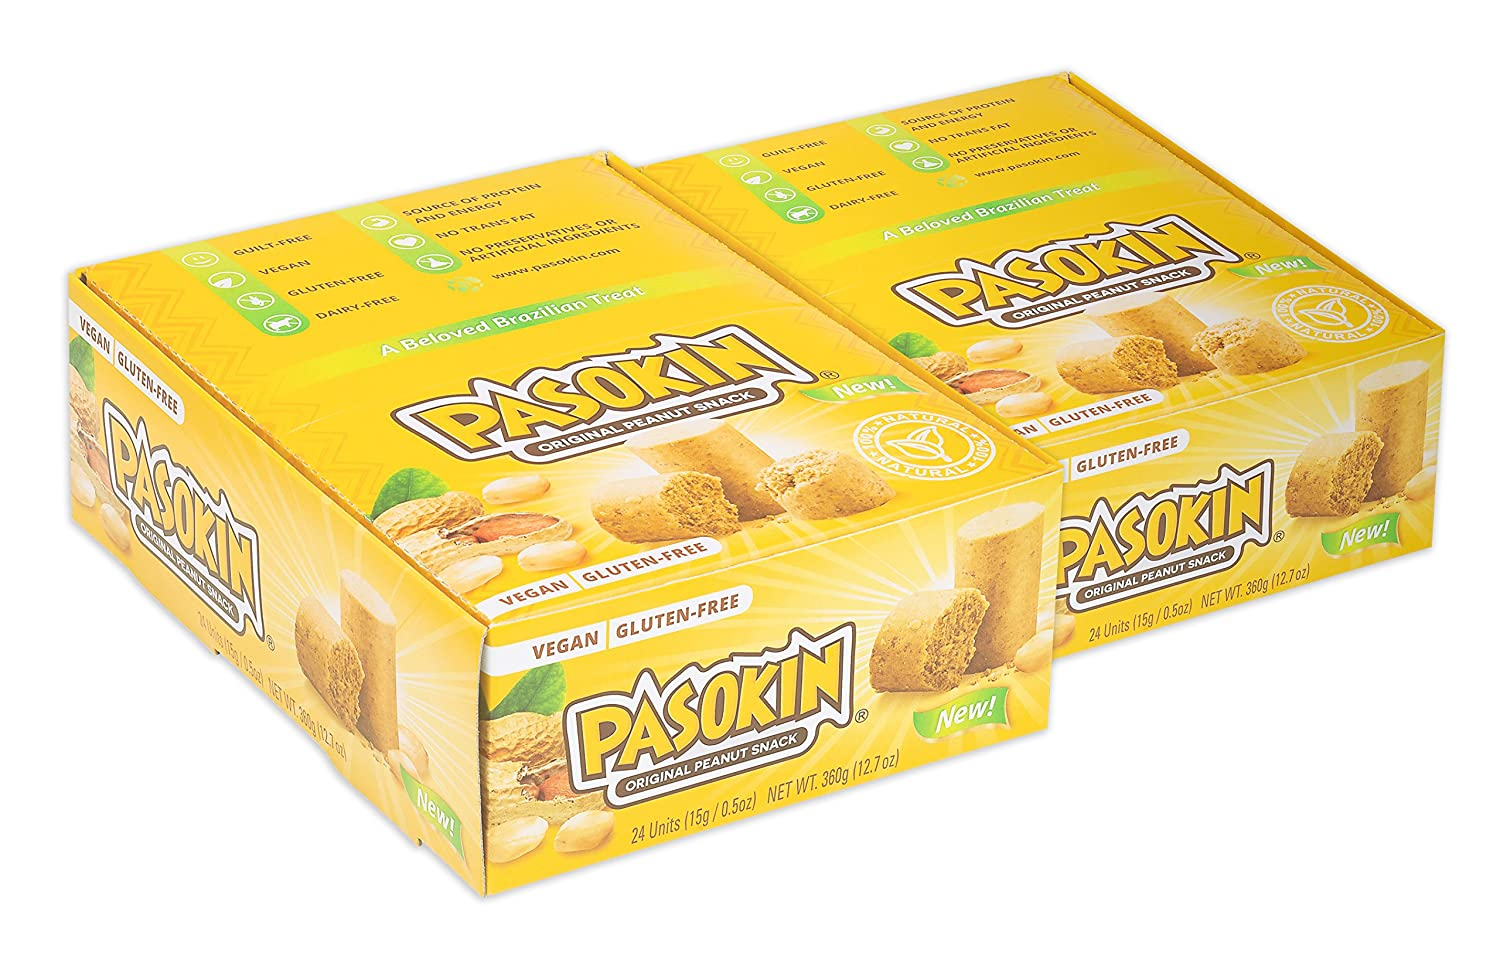 PASOKIN | Original Peanut Butter Snack | Gluten Free, Vegan, All Natural, Made in USA, 0.5 oz bites [24 count, 2 boxes]